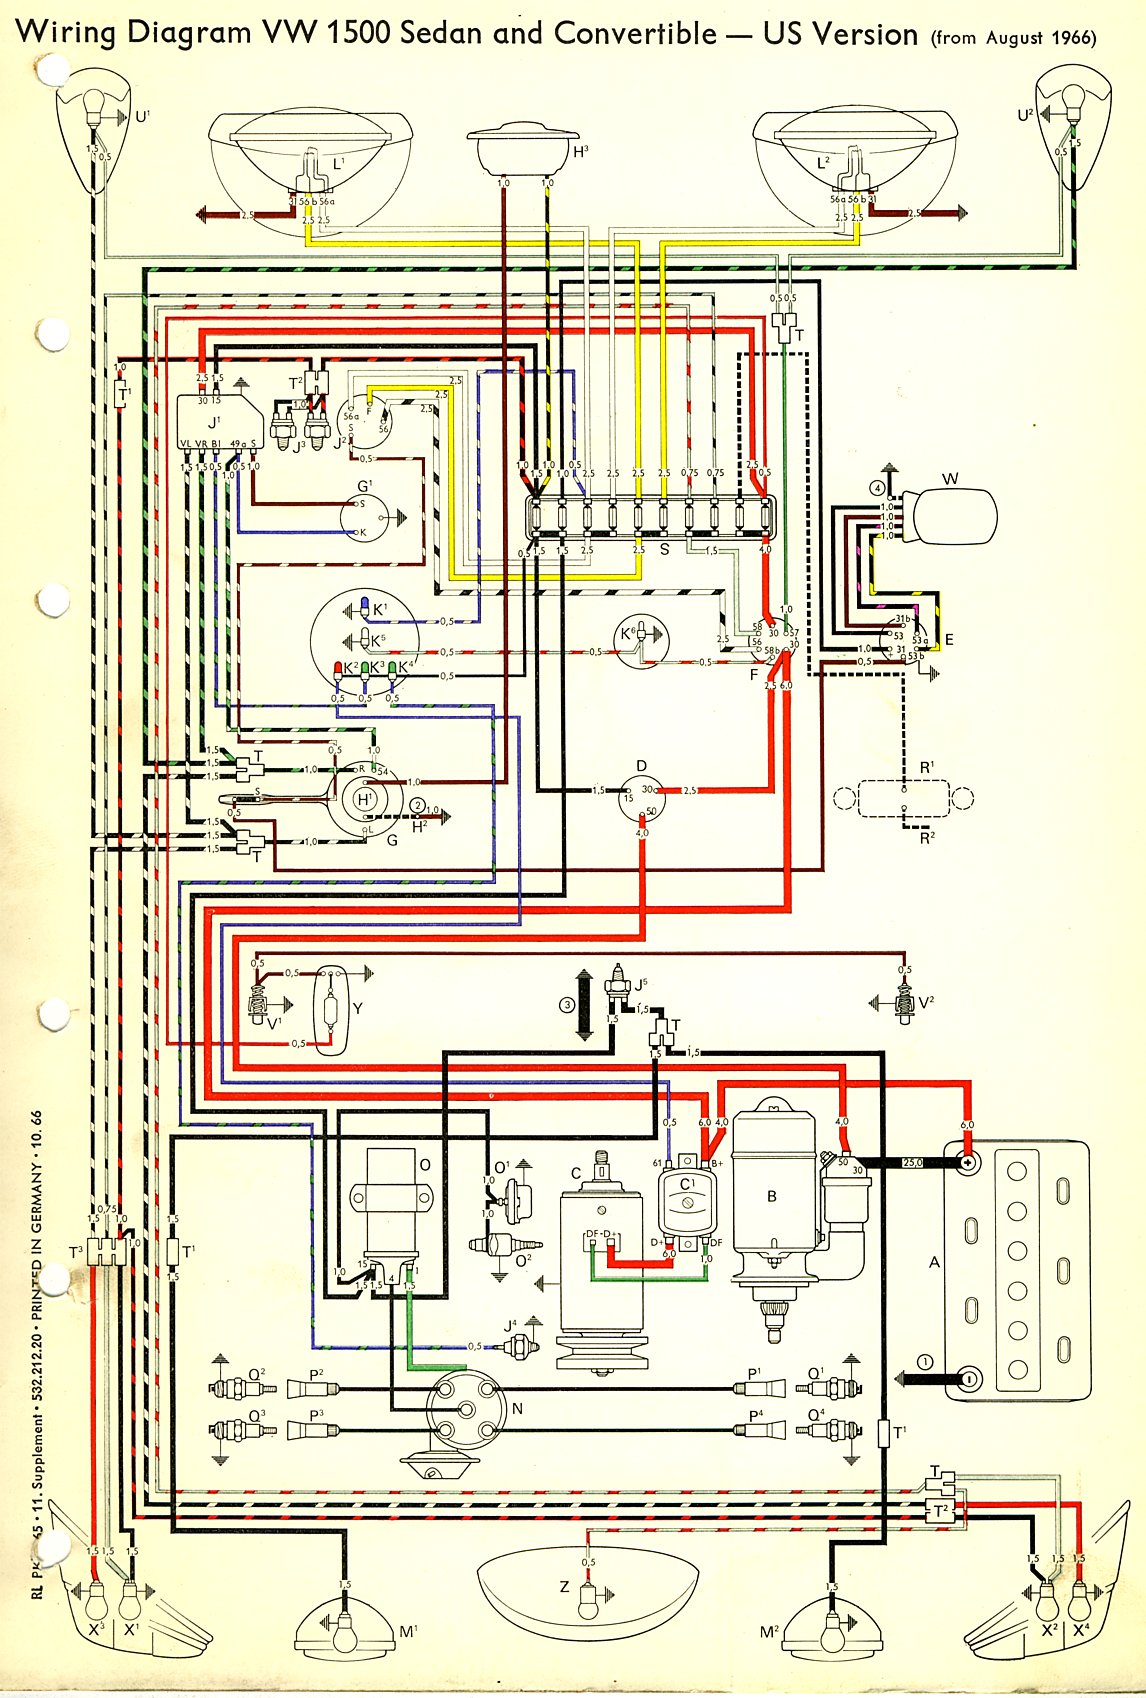 vw bus wiring diagram 1972 vw super beetle wiring diagram vw beetle rh mayasoluciones co